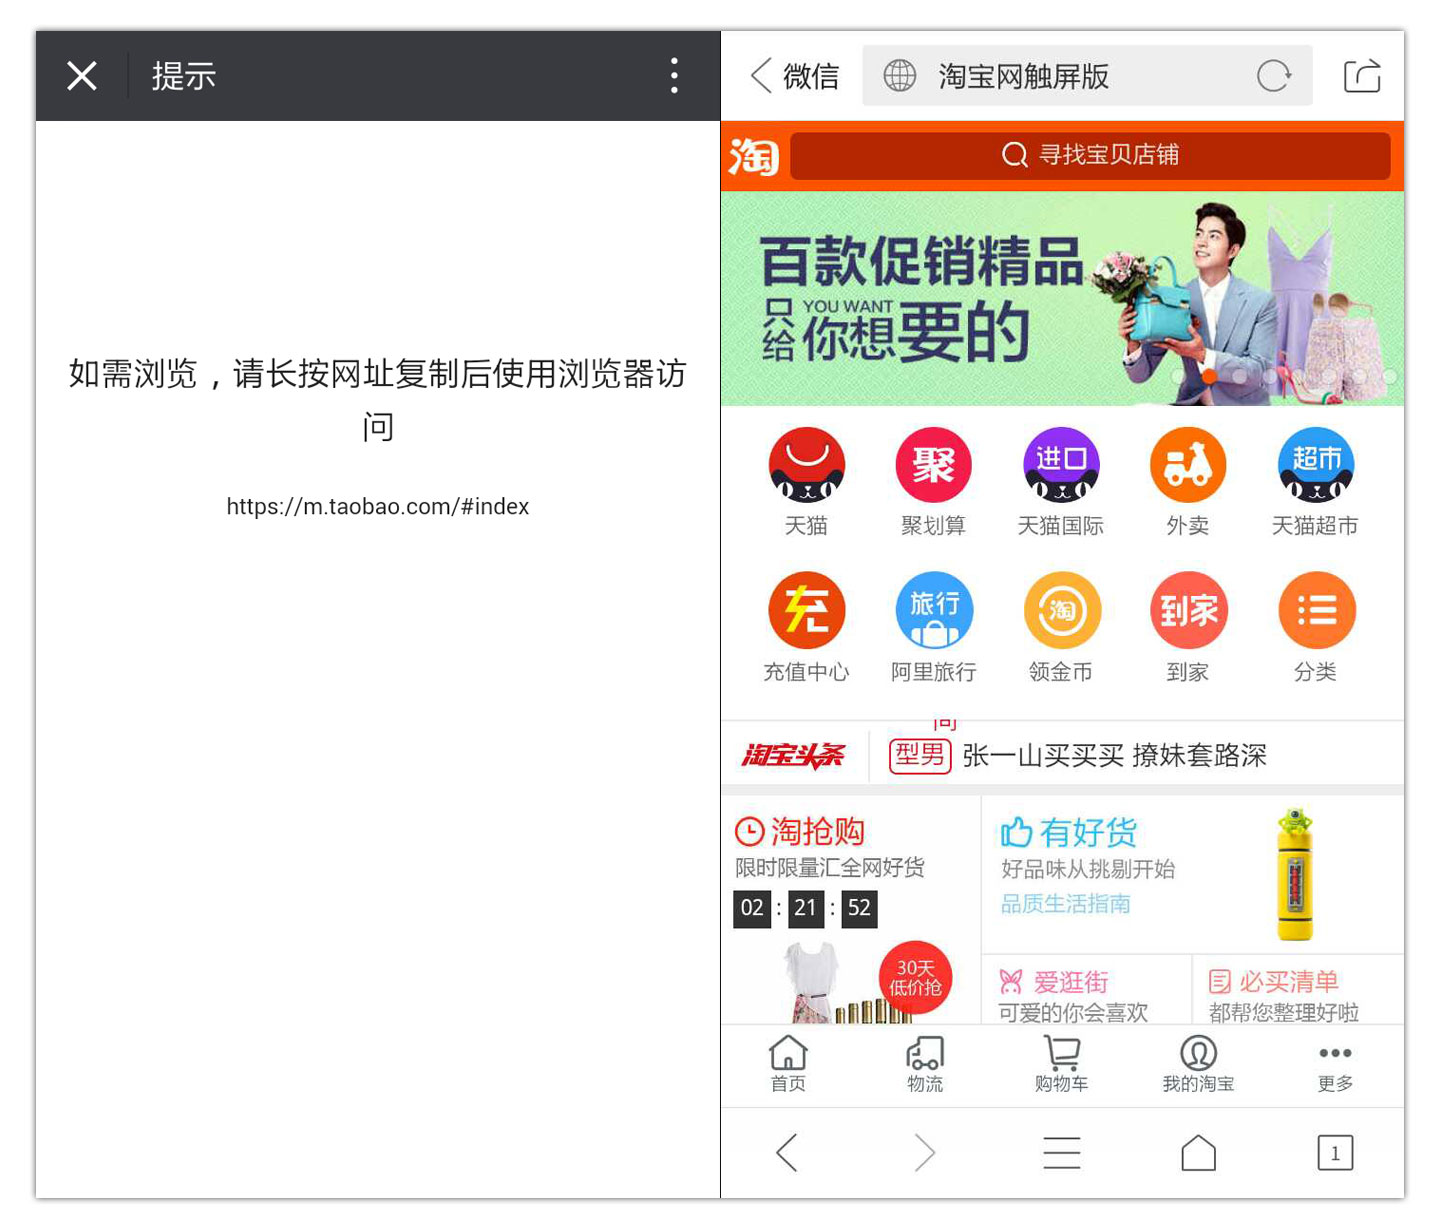 WeChat Moments Search: Search Your Friend's Moments - China Channel